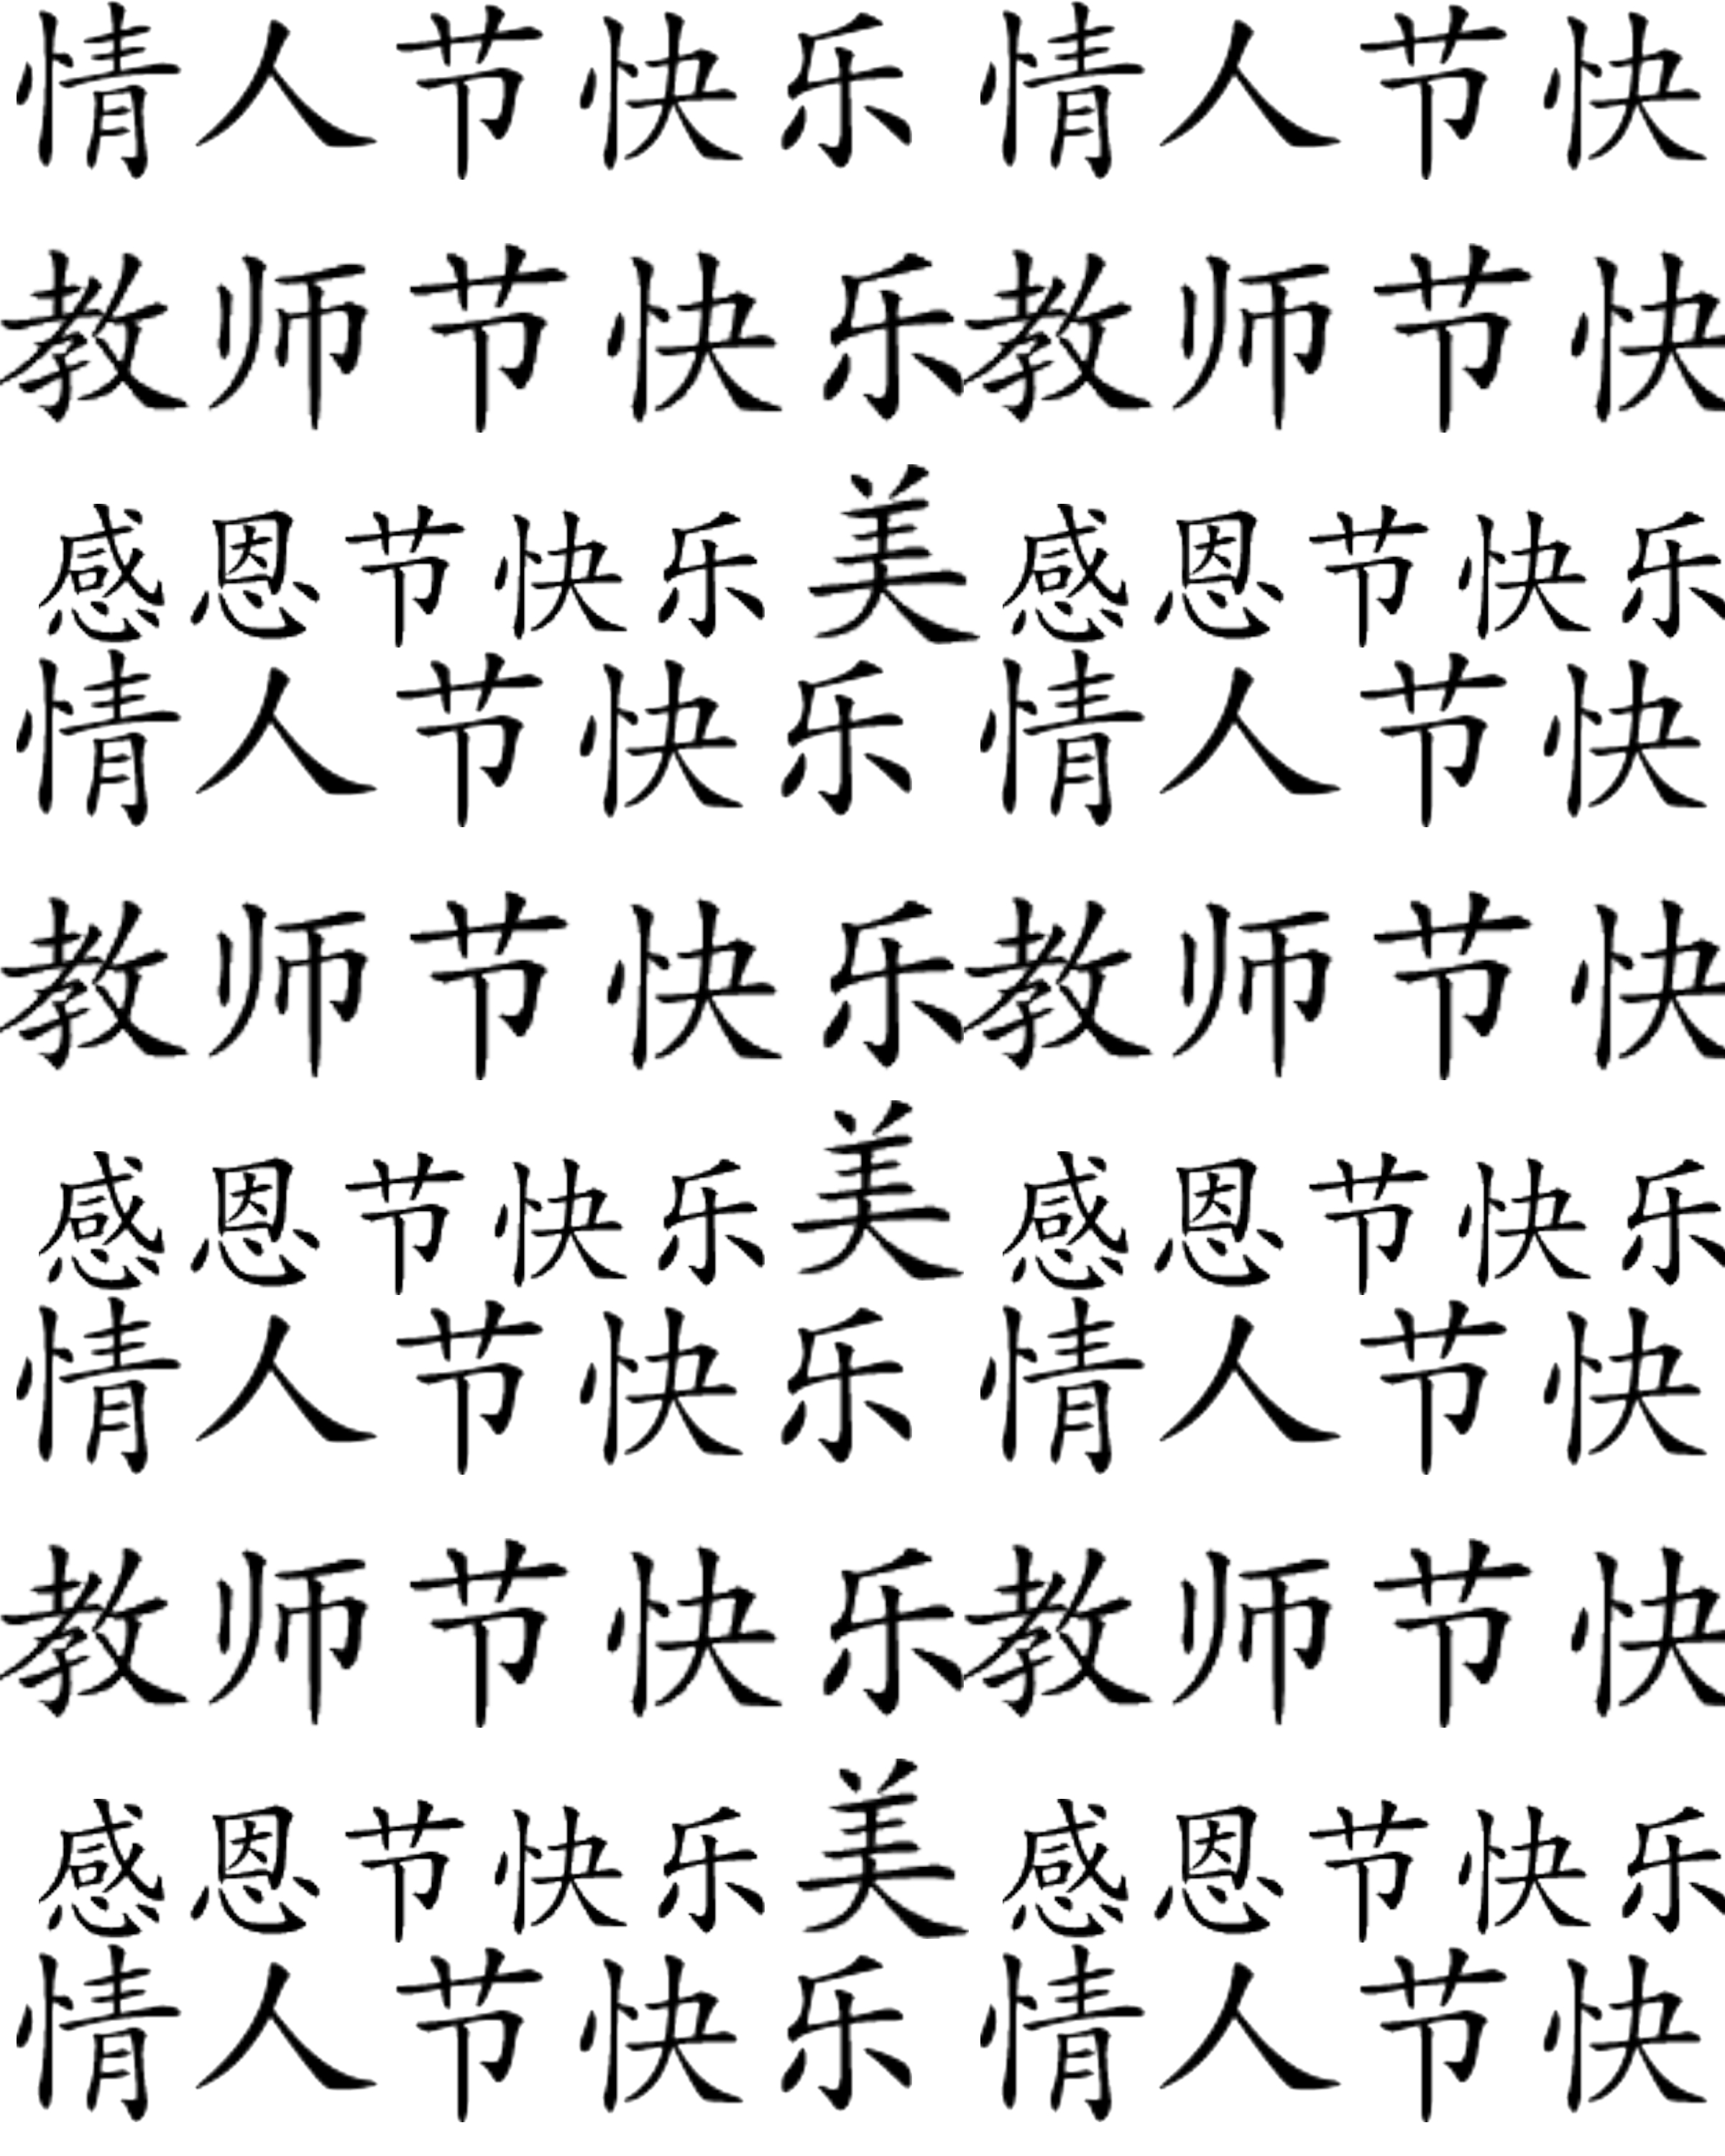 Chinese Calligraphy Drawing At Getdrawings Free For Personal